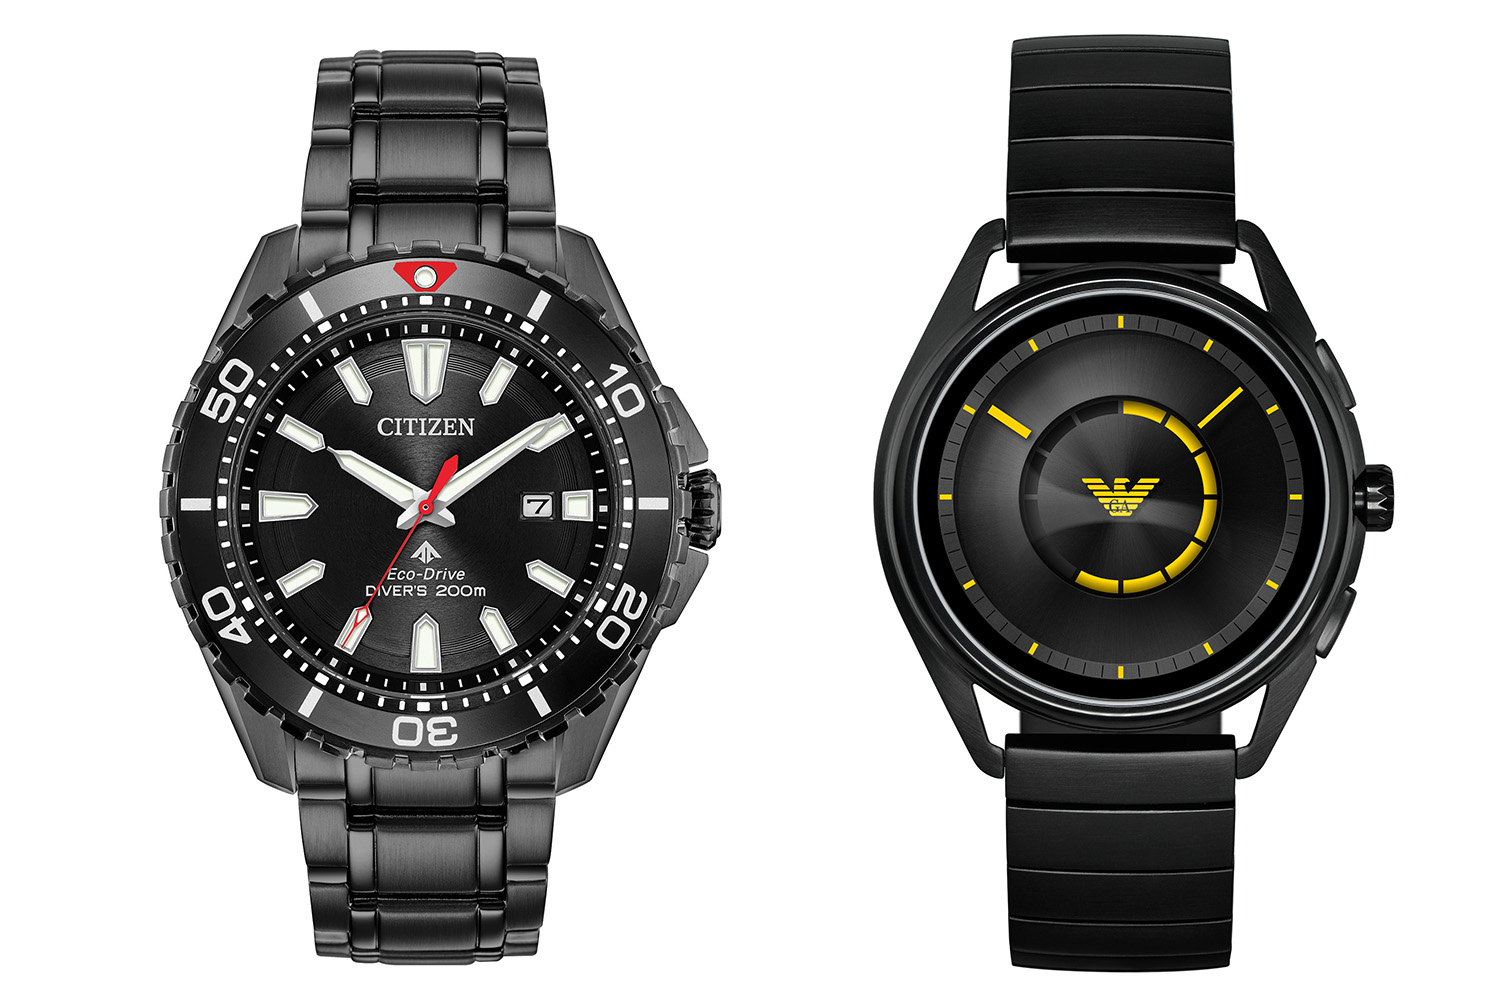 250fd72f6dd242 Citizen and Fossil Group join forces to grow hybrid watch market.  Technology licensing partnership will accelerate product development while  containing ...